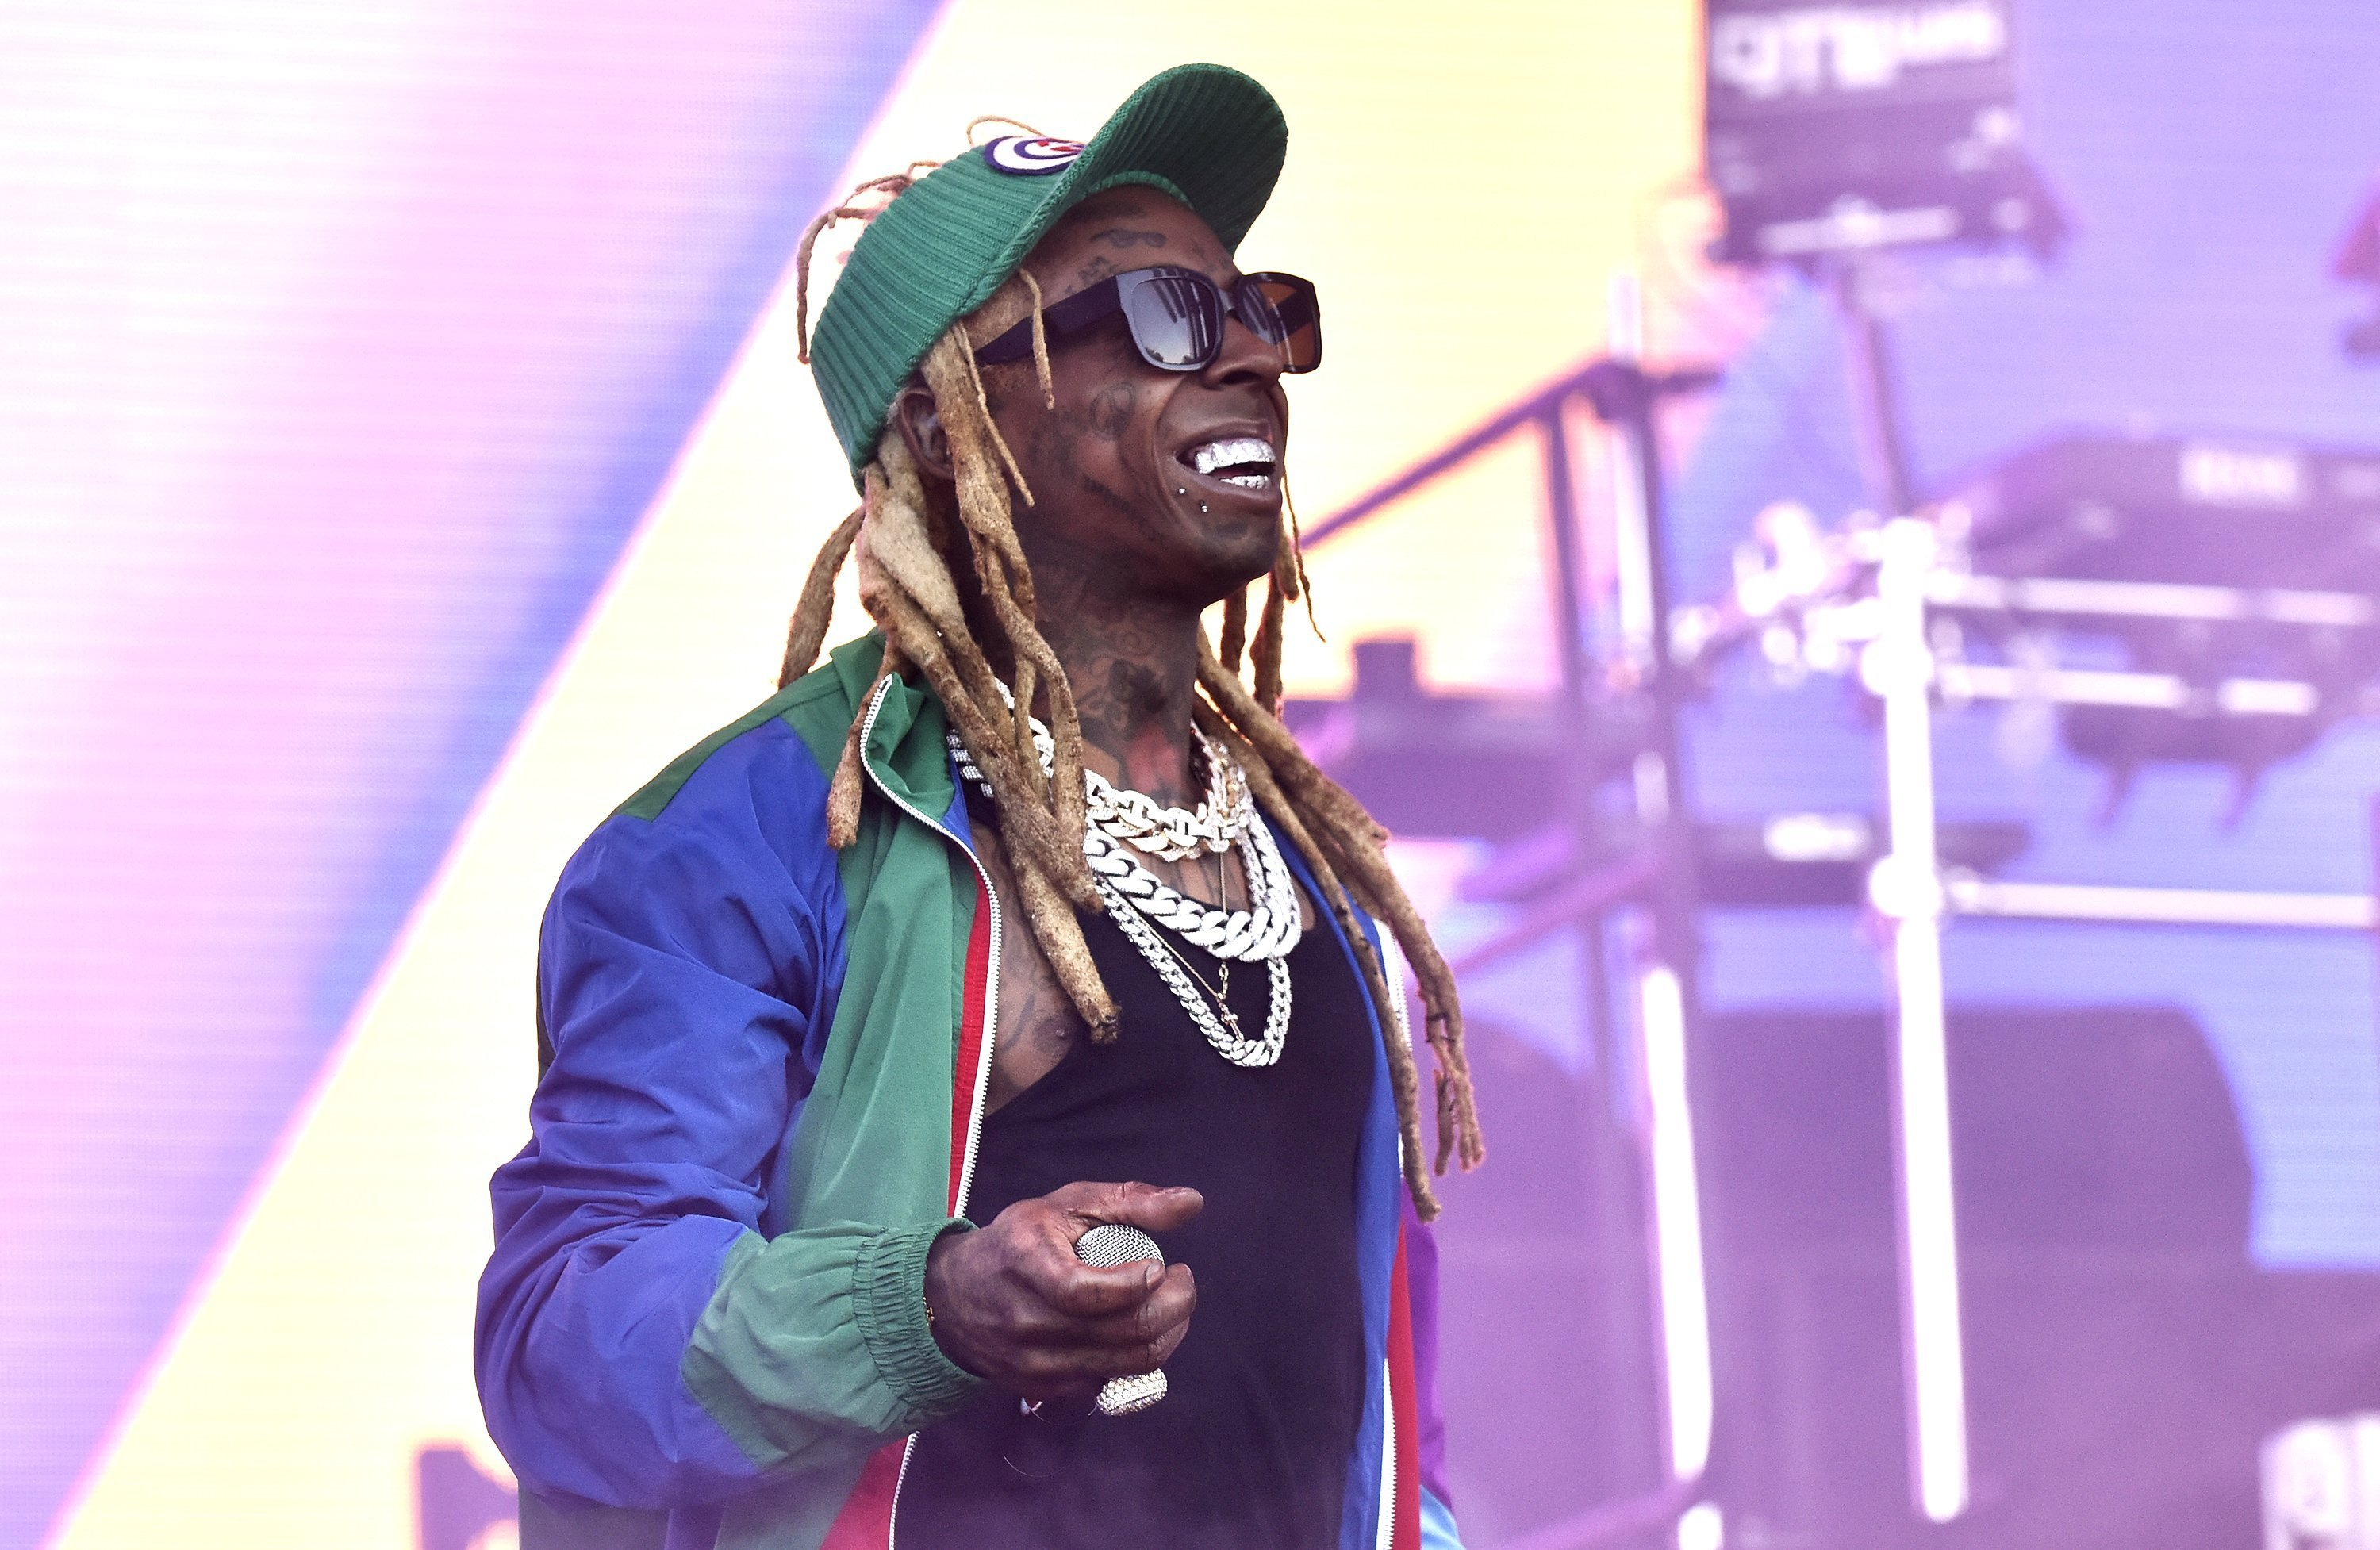 Lil Wayne performs during the 2019 Outside Lands music festival at Golden Gate Park on August 9, 2019 |Photo: Getty Images